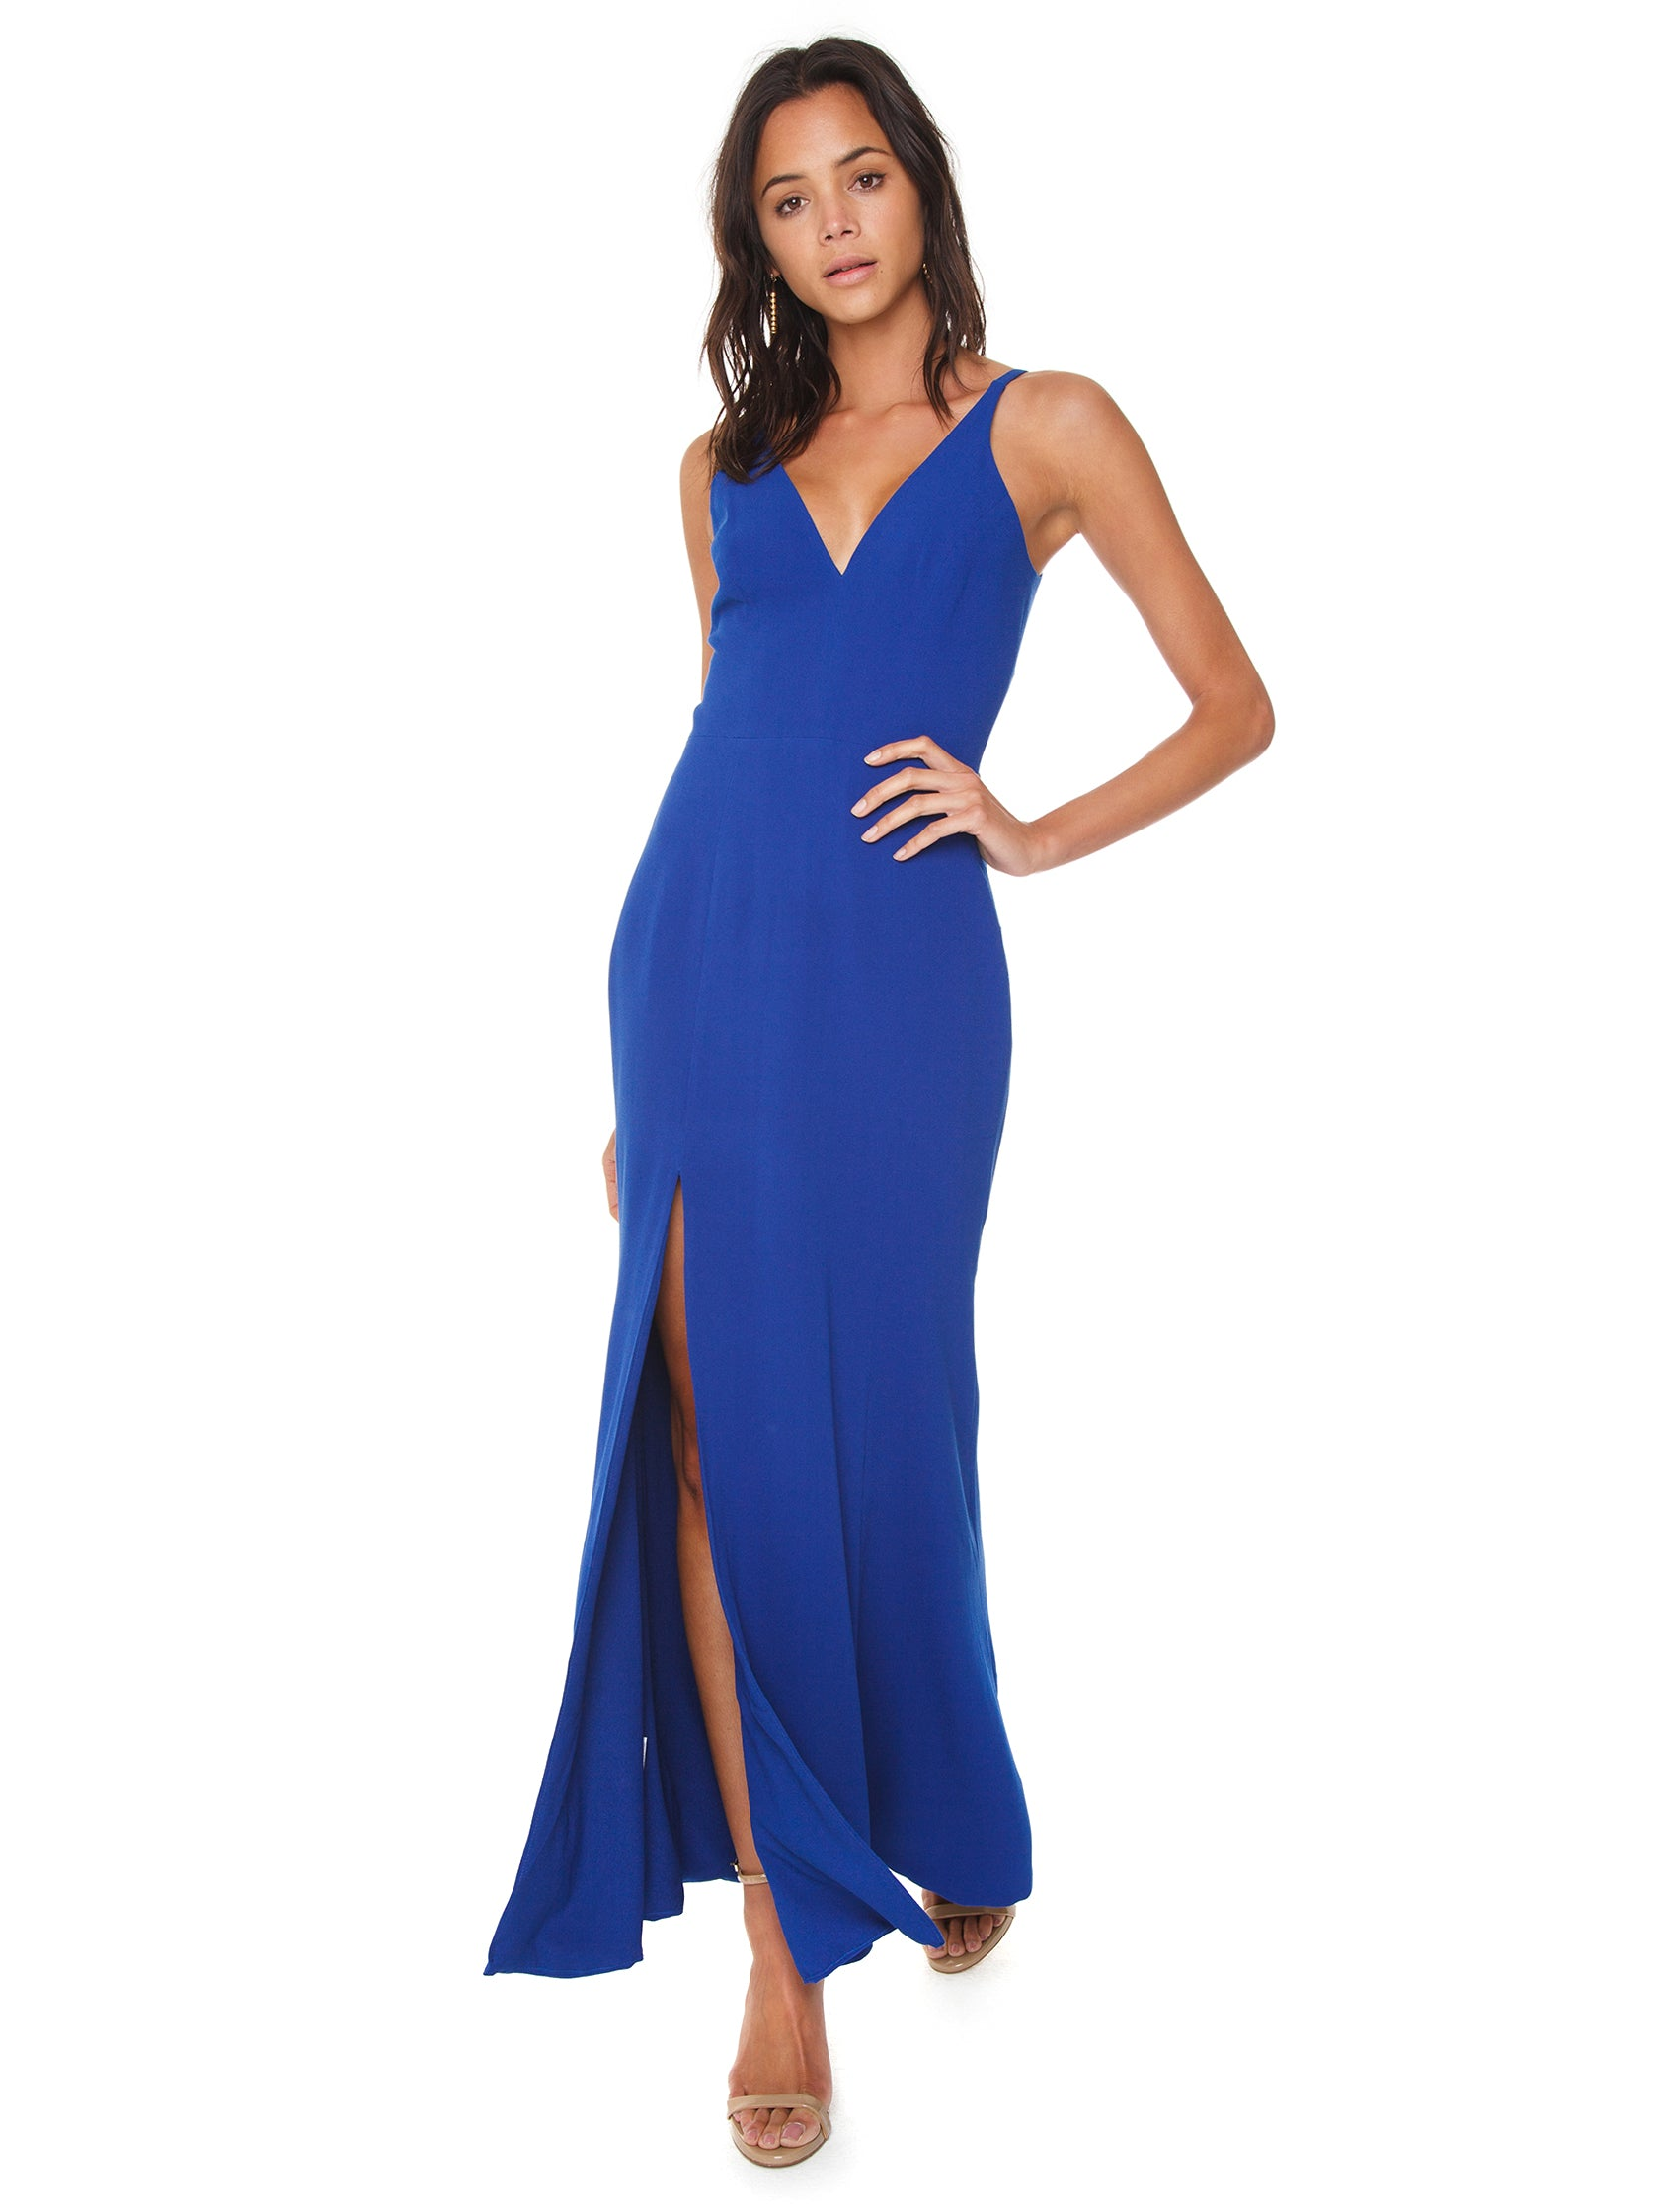 Girl outfit in a dress rental from Dress the Population called Iris Crepe Side Slit Gown